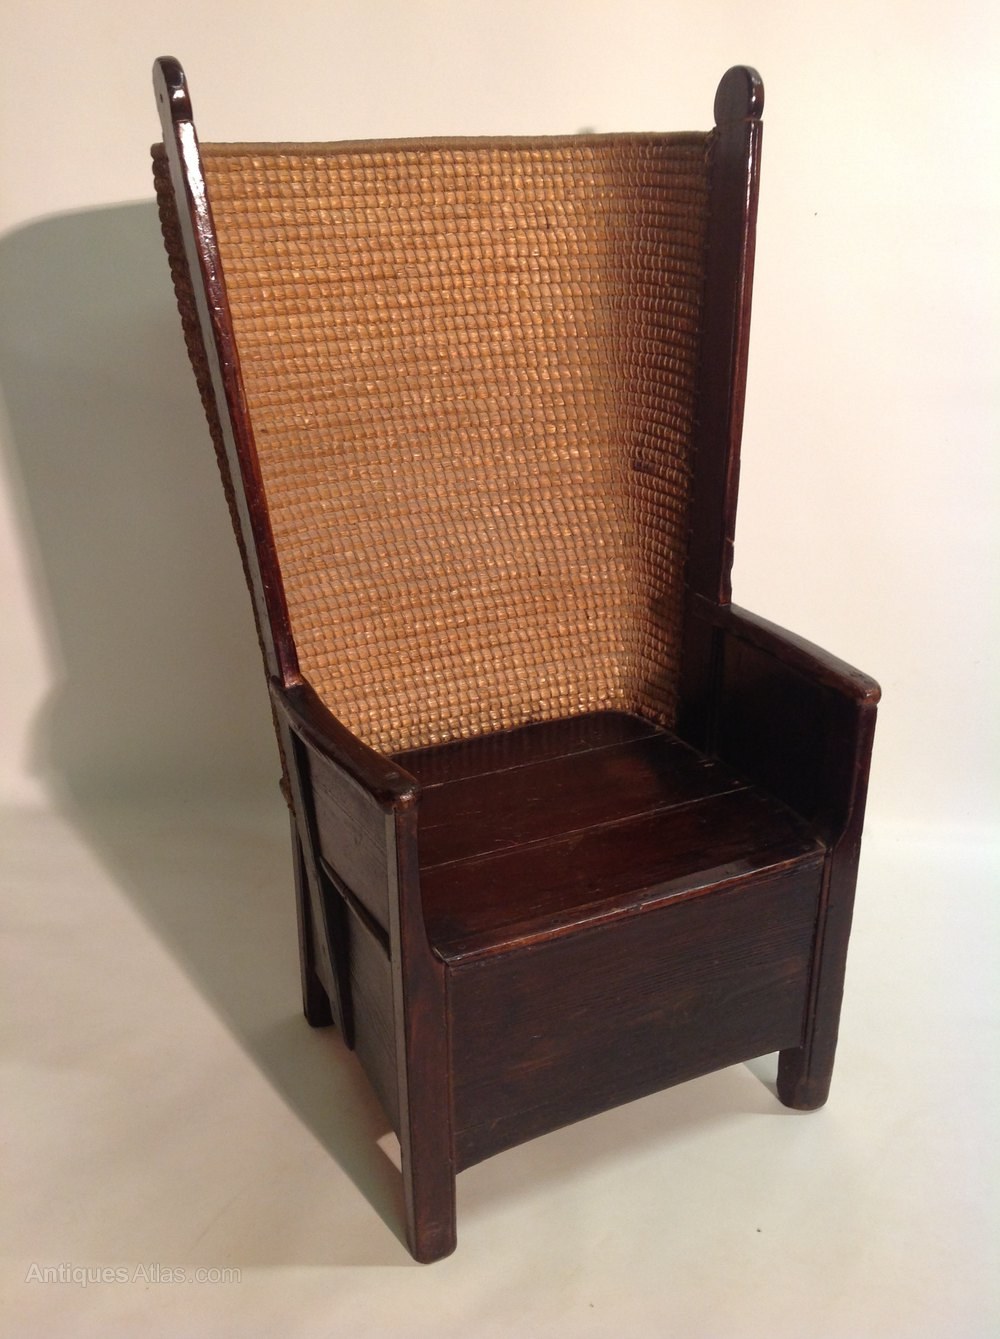 Rare Orkney Chair Antique Orkney Chairs ... - Rare Orkney Chair - Antiques Atlas